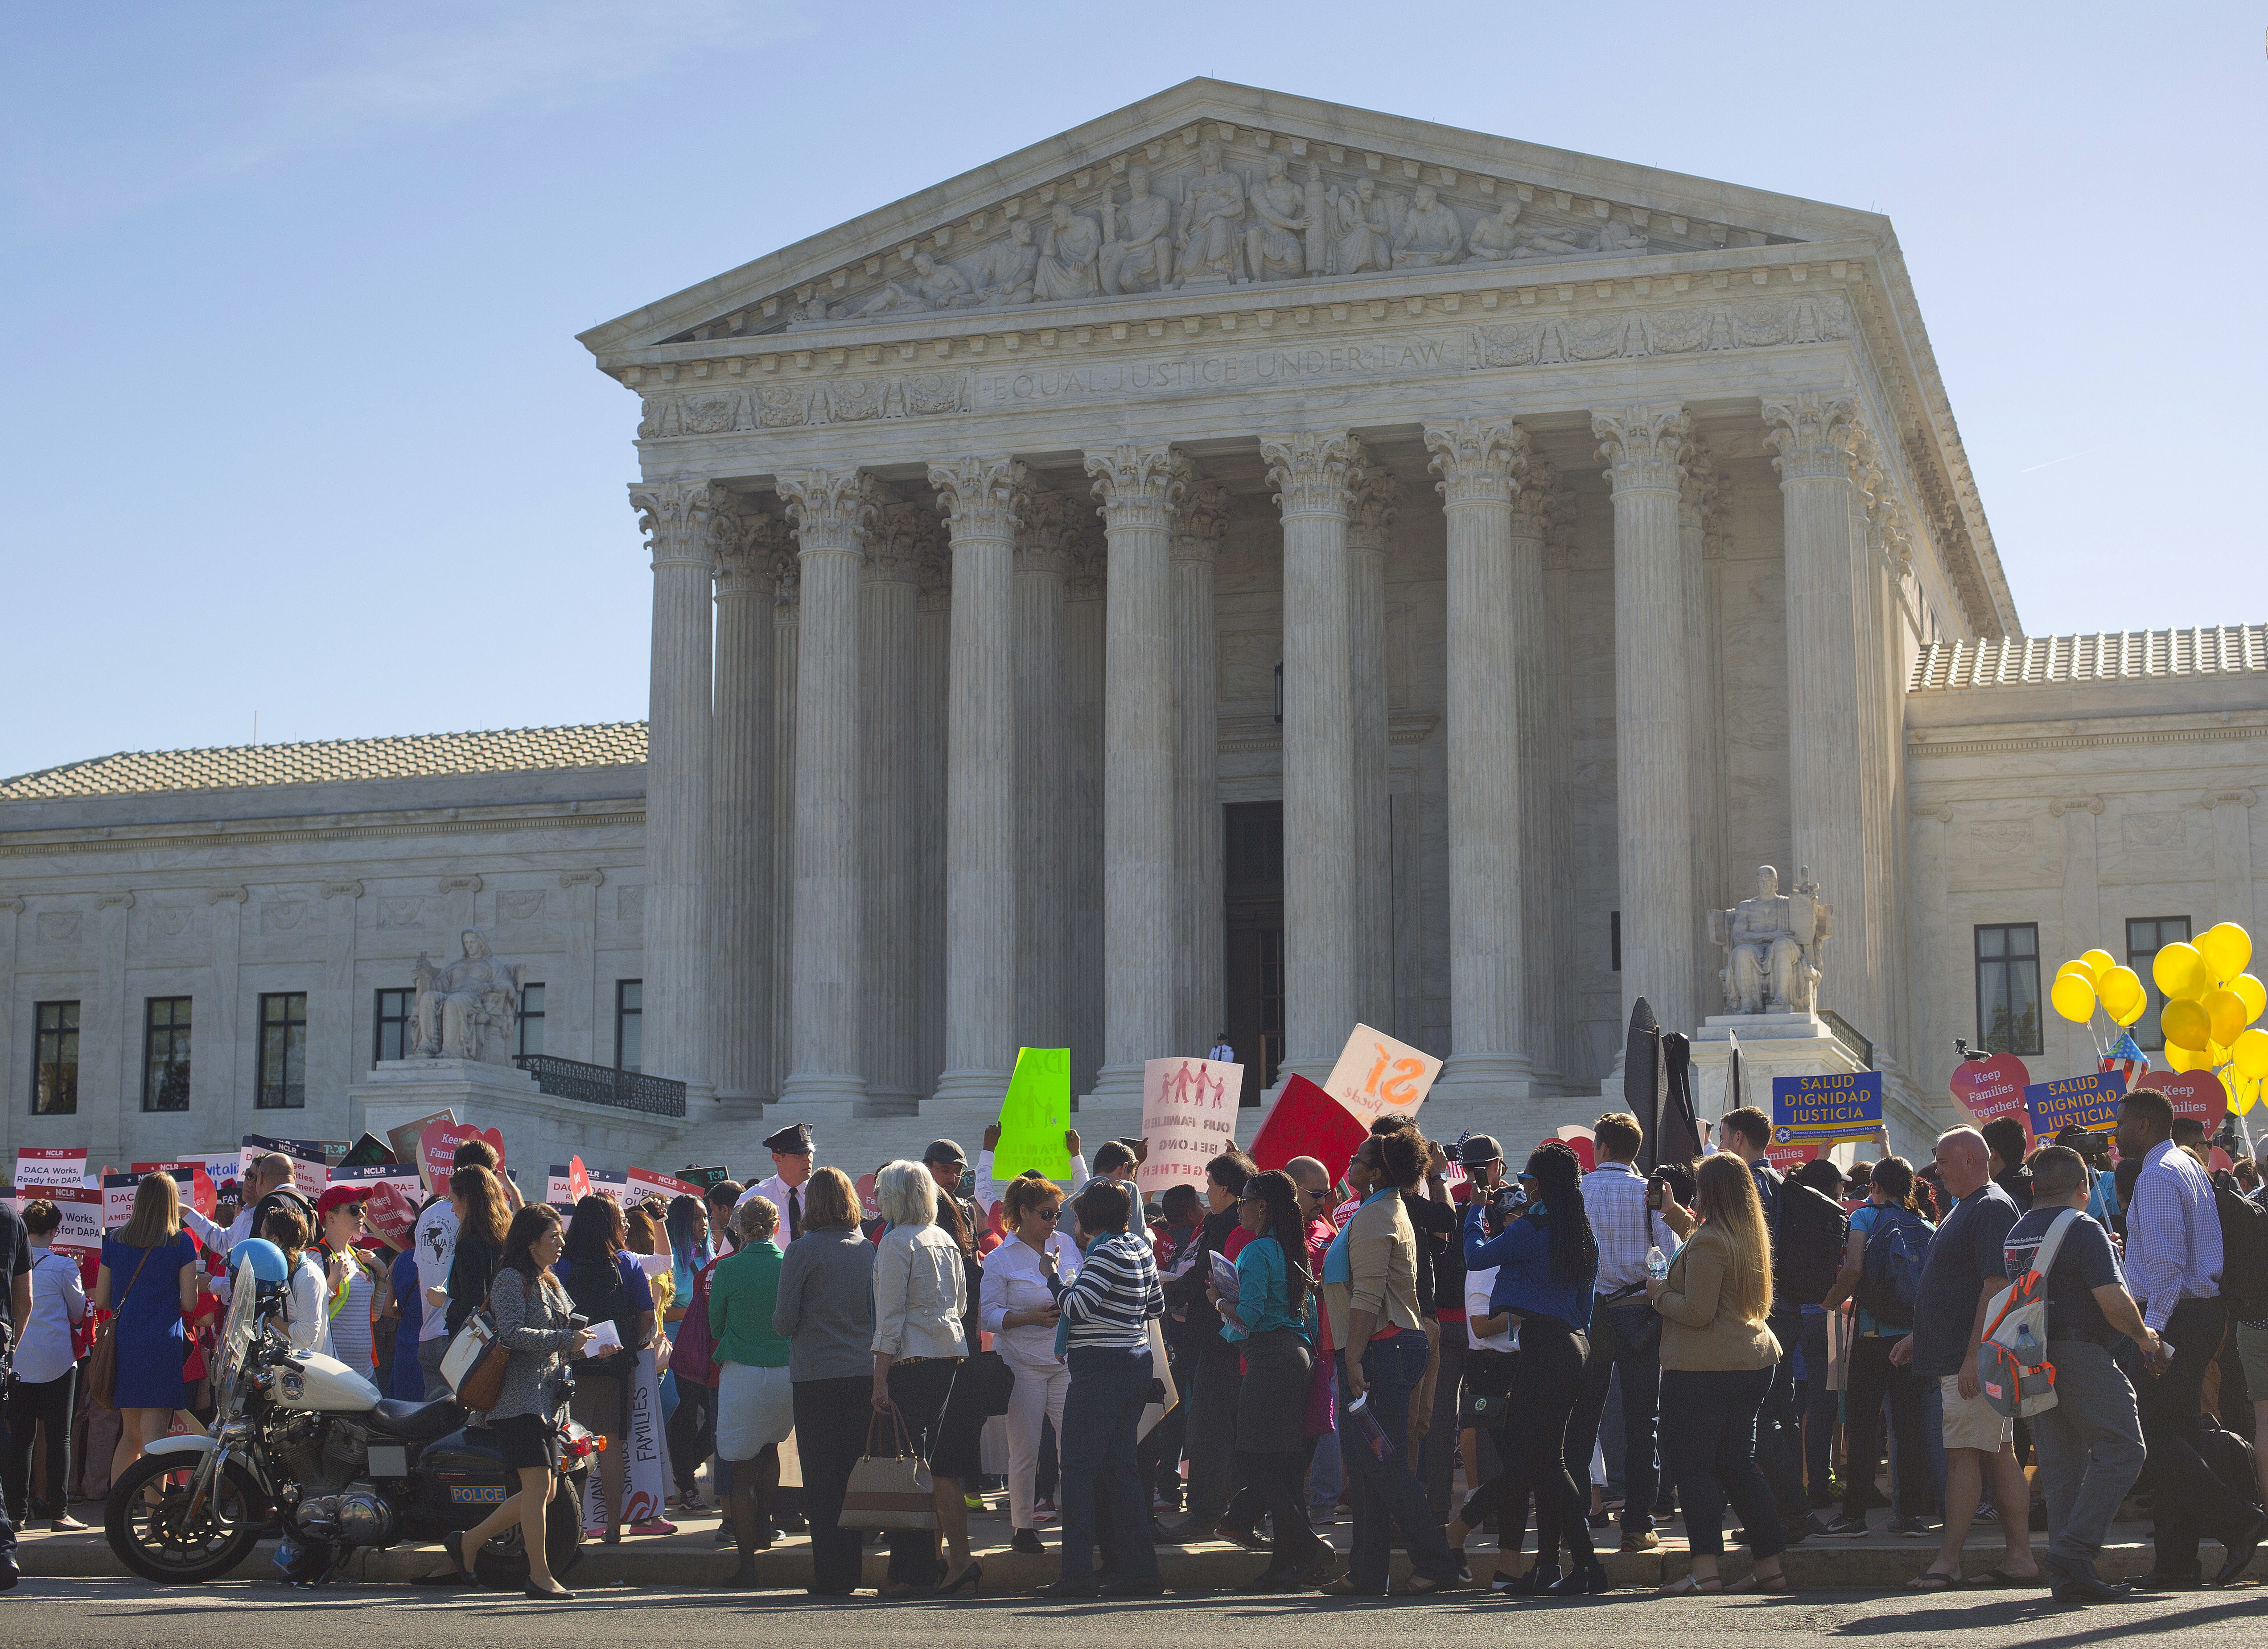 a review of an immigration case at the us supreme court The case of an undocumented immigrant from brazil who lives on martha's vineyard was argued before the us supreme court monday,and the case has broader implications for how immigration.